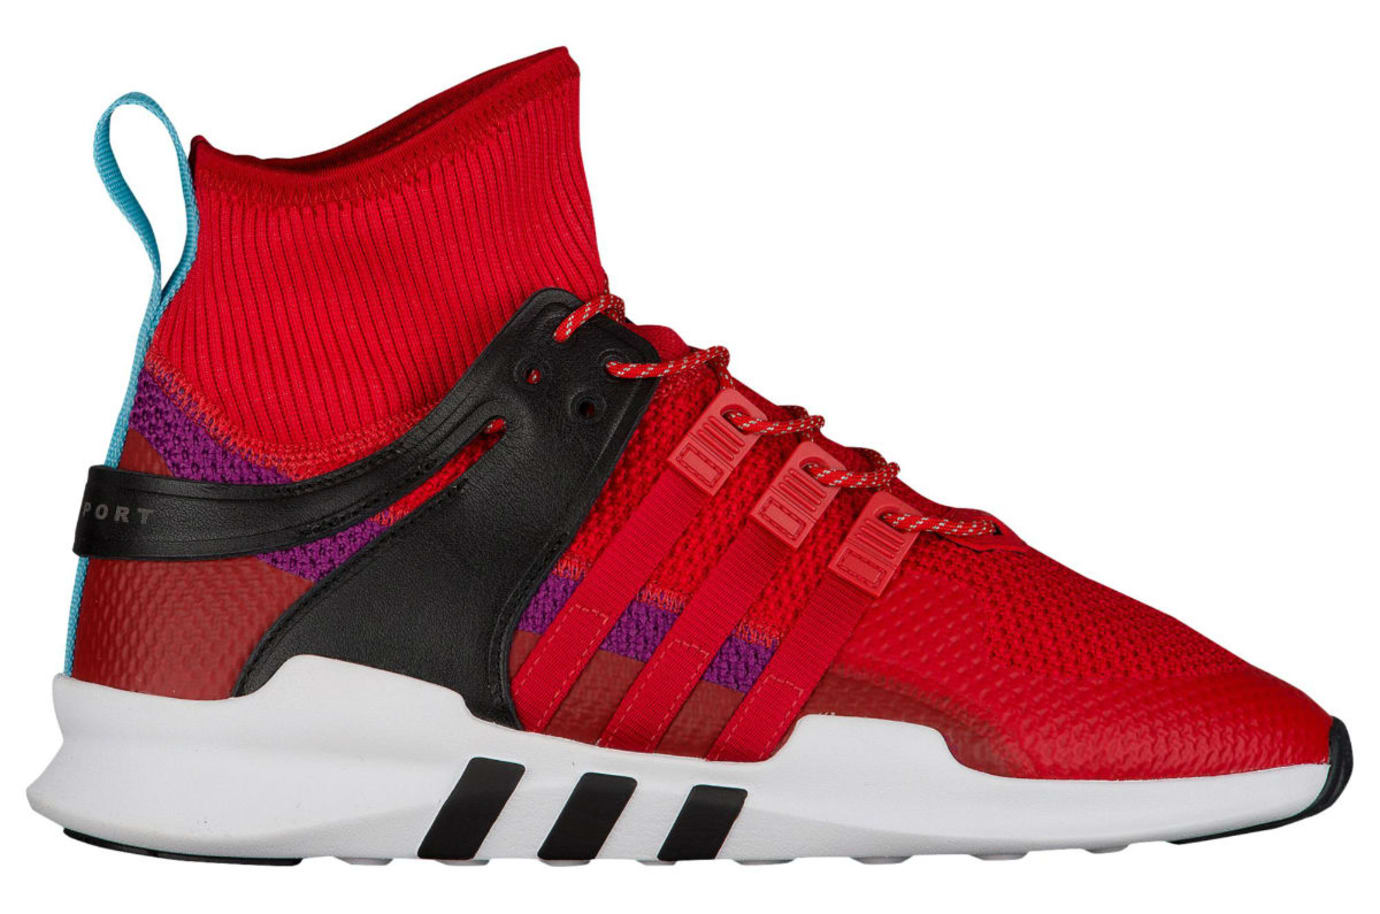 Adidas EQT Support ADV Winter Scarlet Shock Purple Release Date Profile